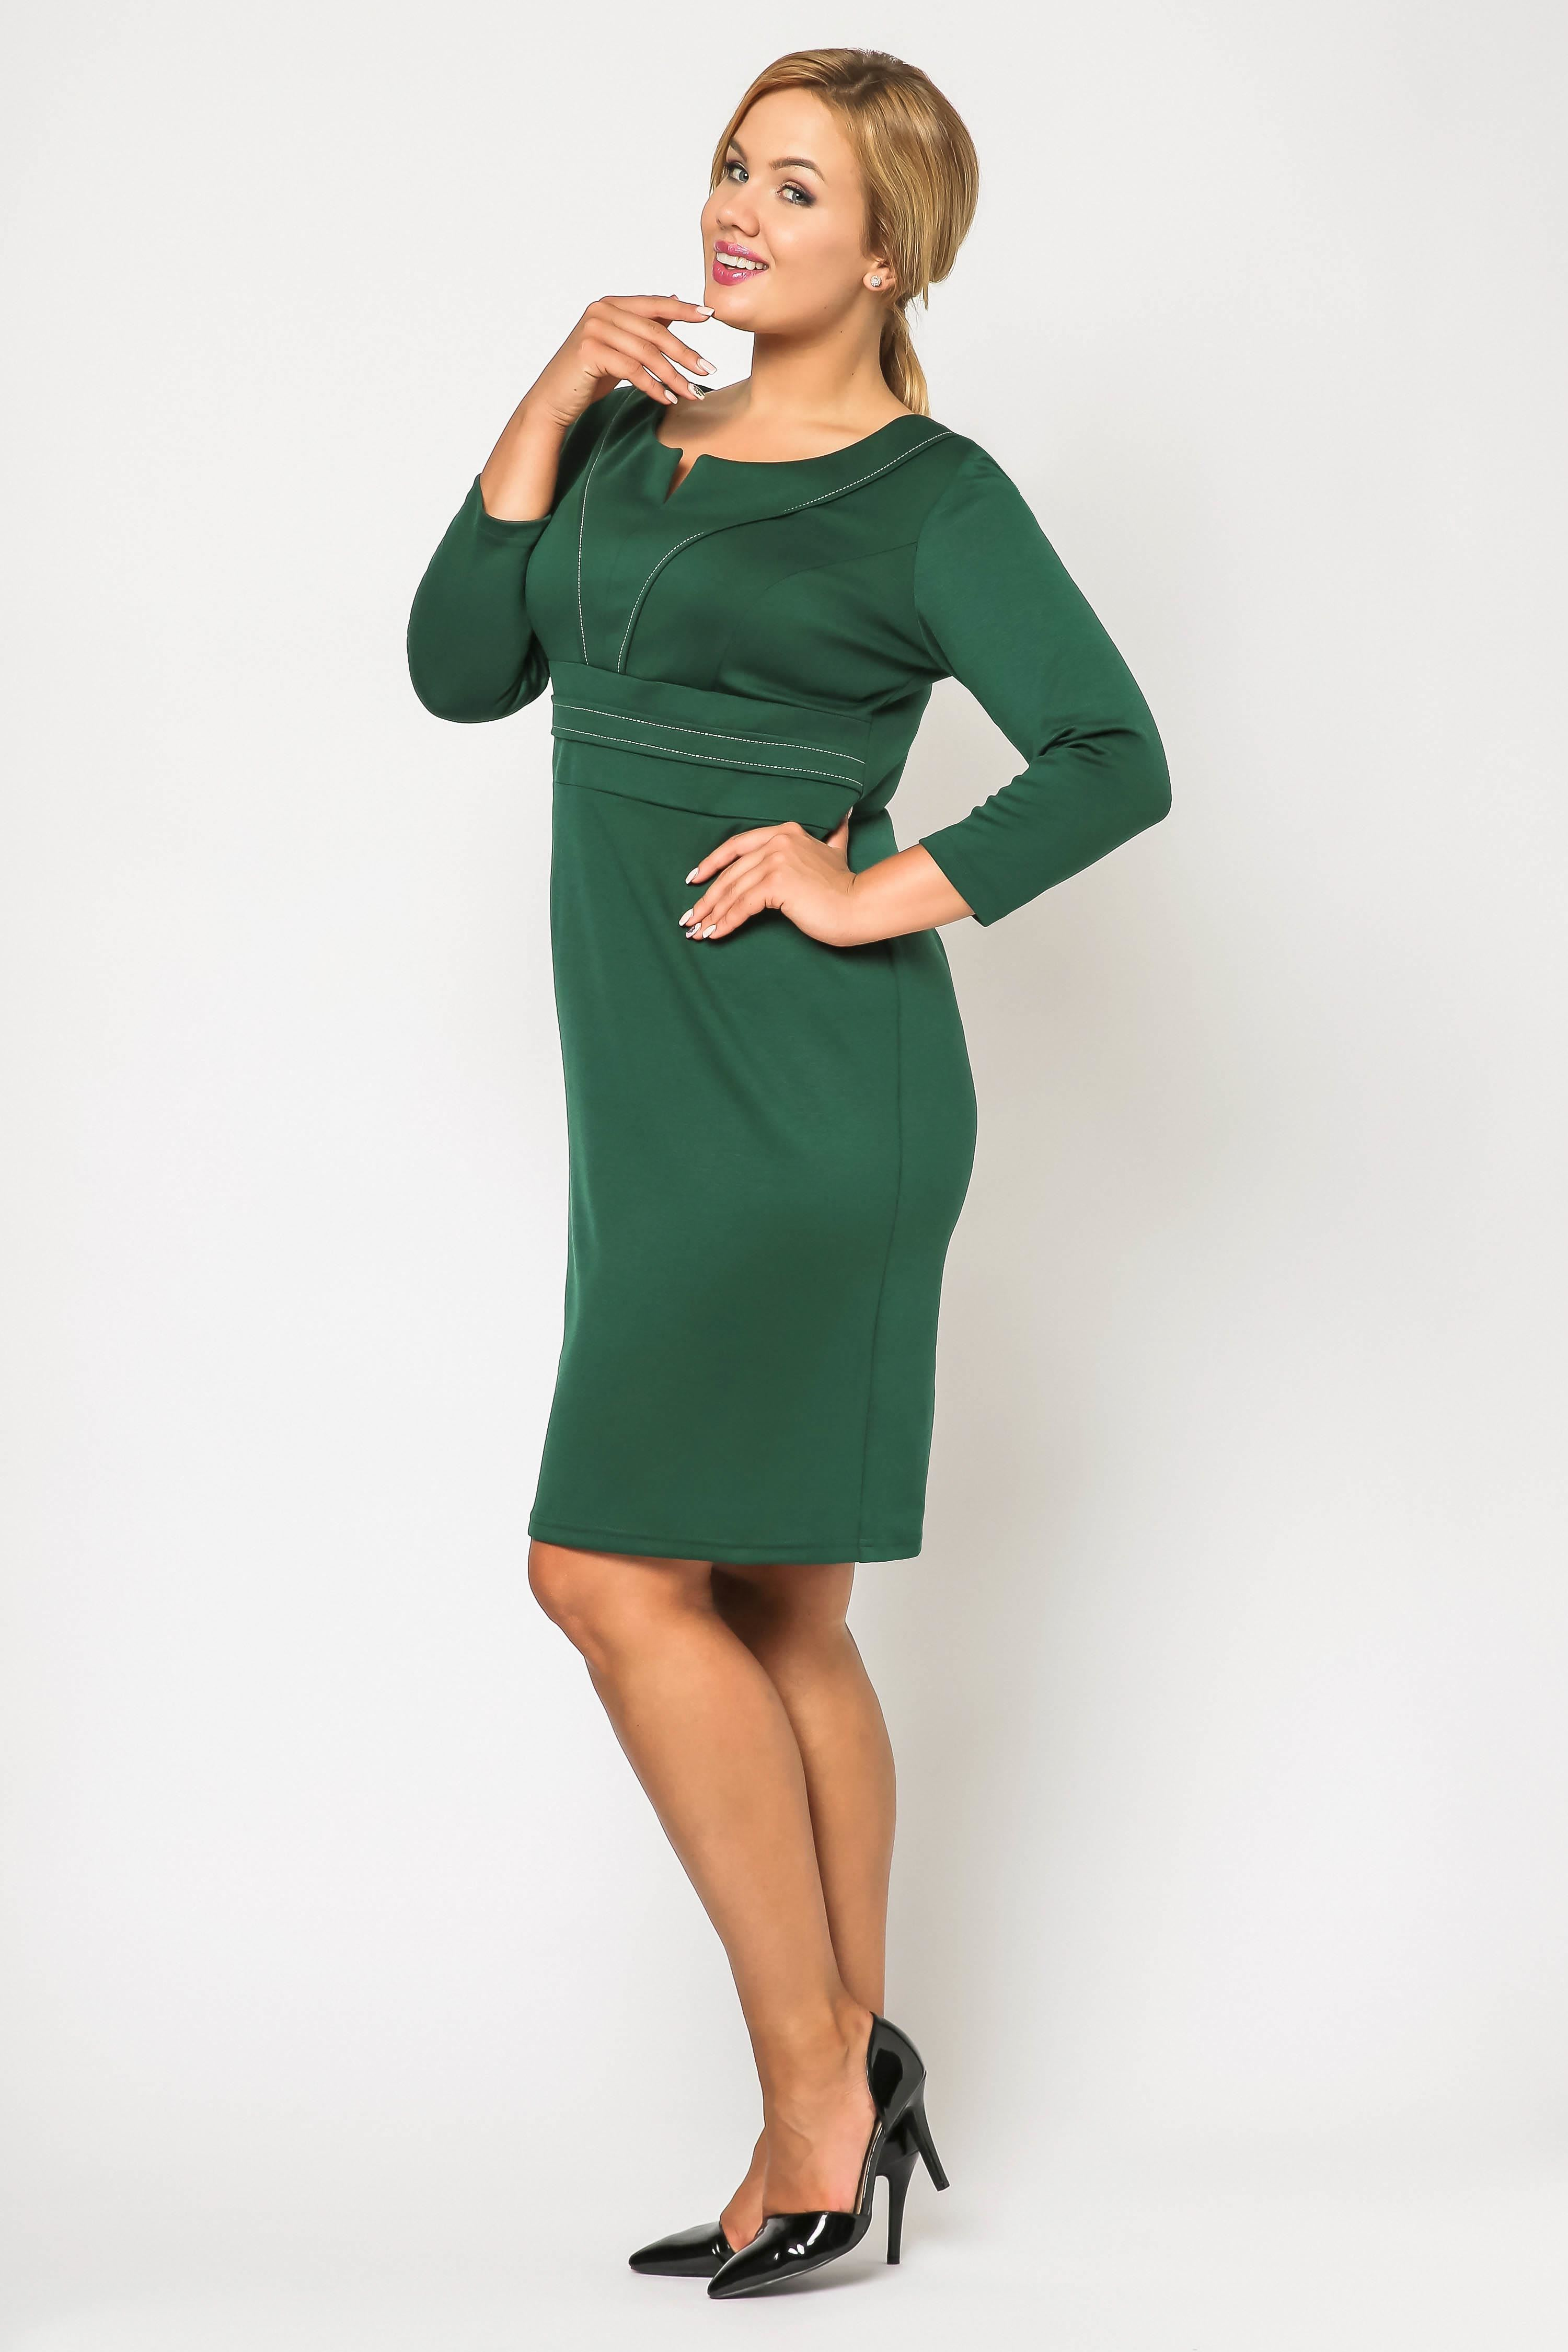 Tamara Knitwear dress in green